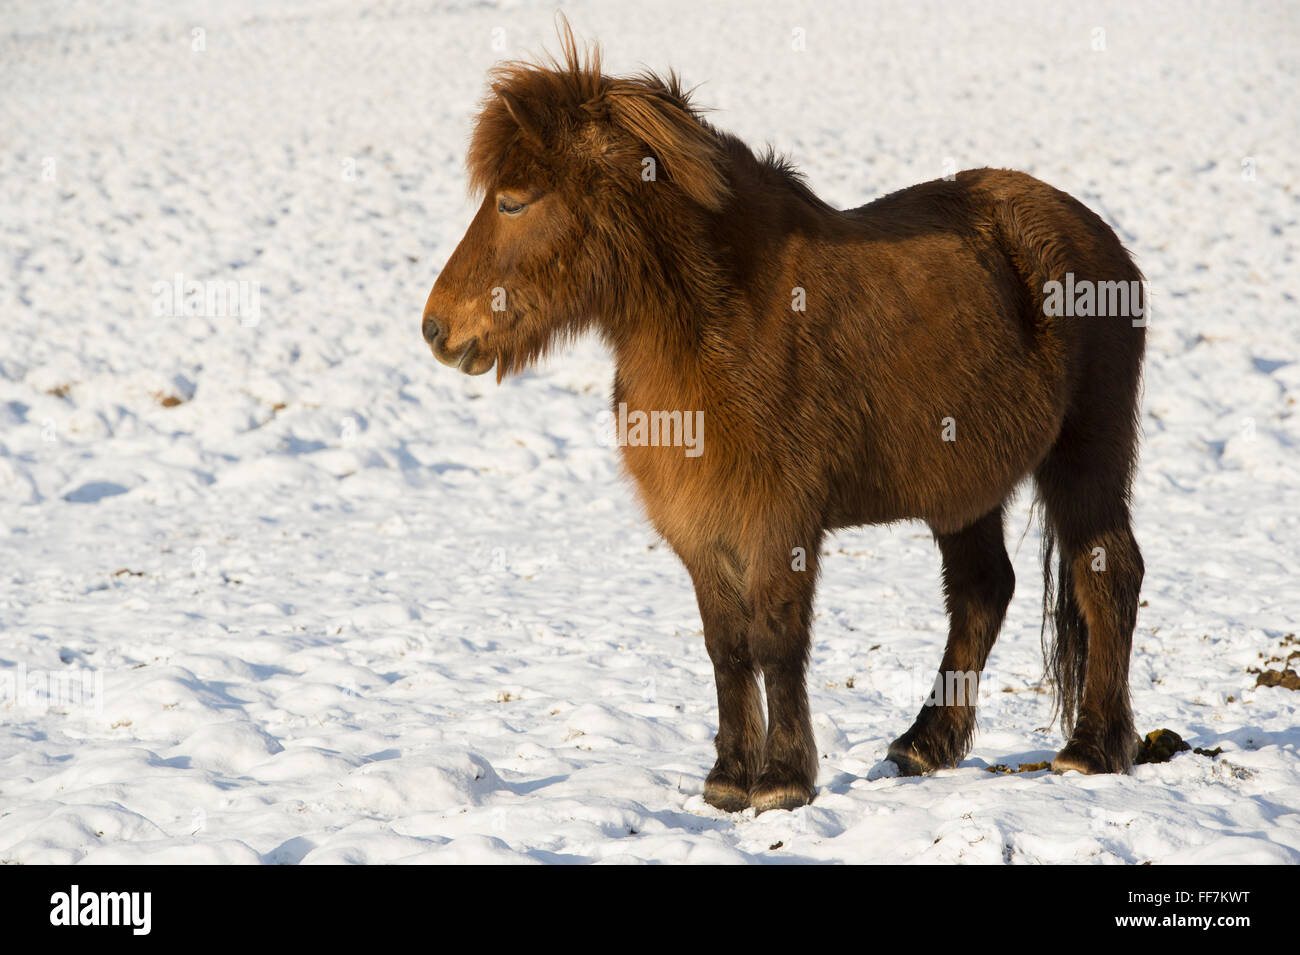 An Icelandic Horse (Pony) in the snow covered fields during winter - Stock Image